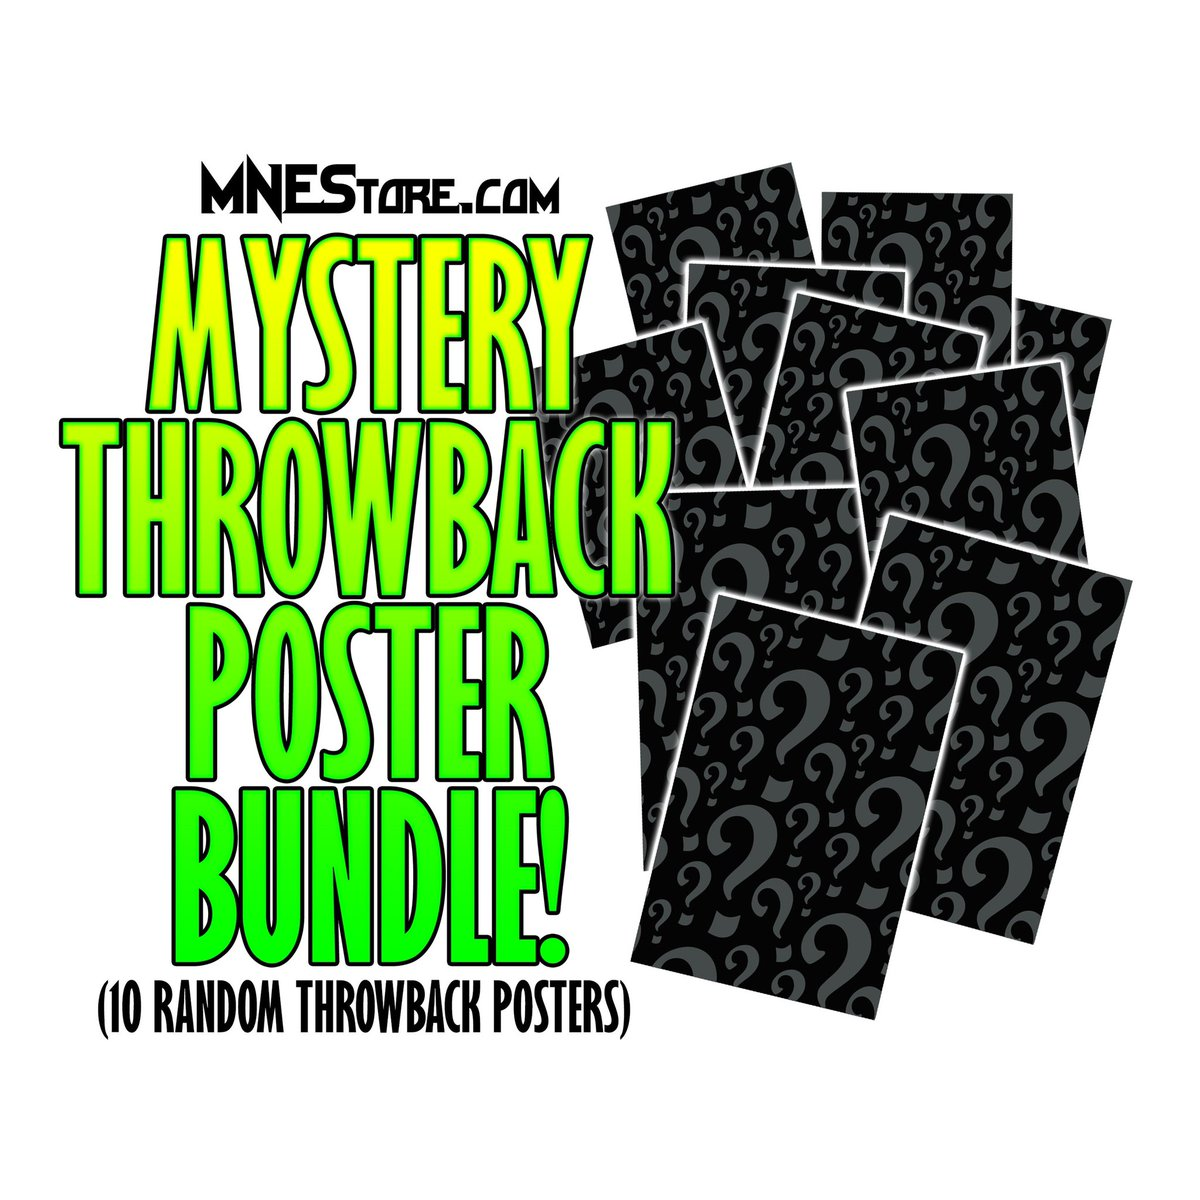 Hit up the link in bio 👆🏻for a mystery #throwbackthursday poster bundle 🤘🏻 #majikninjaentertainment #oldschool #mne2020 #juggalo